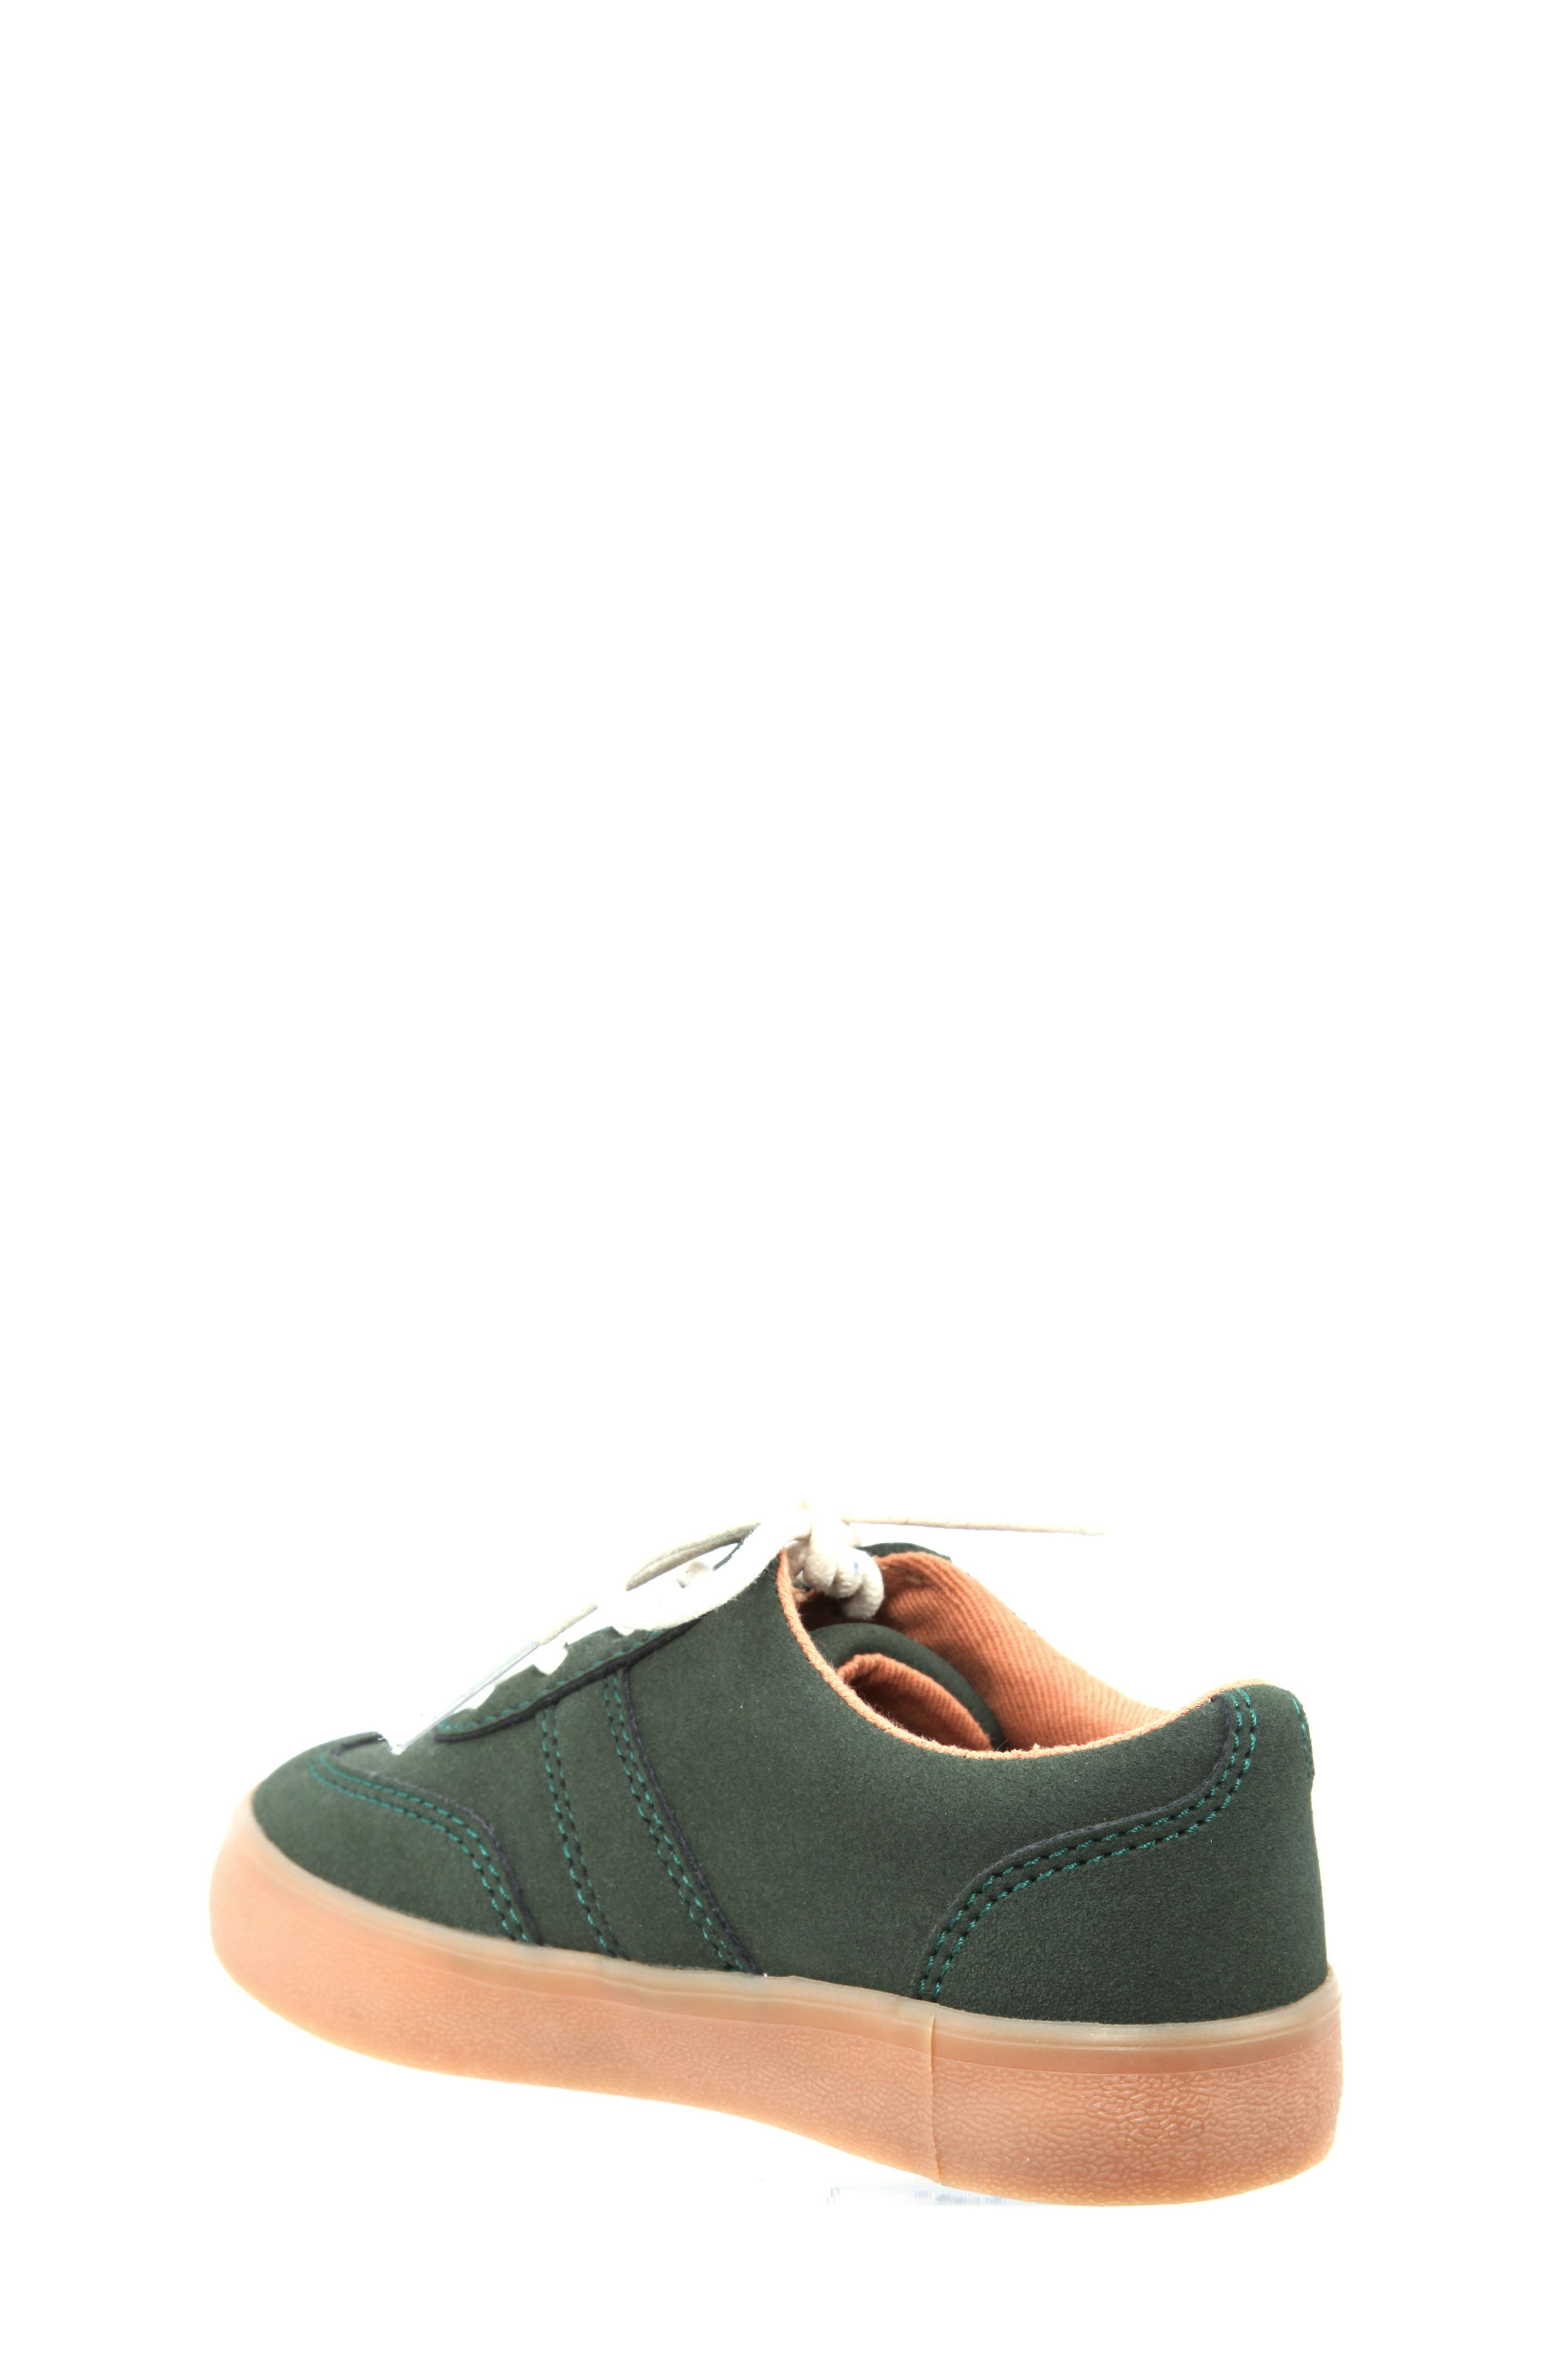 Neal Low Top Sneaker,                             Alternate thumbnail 2, color,                             Olive Suede